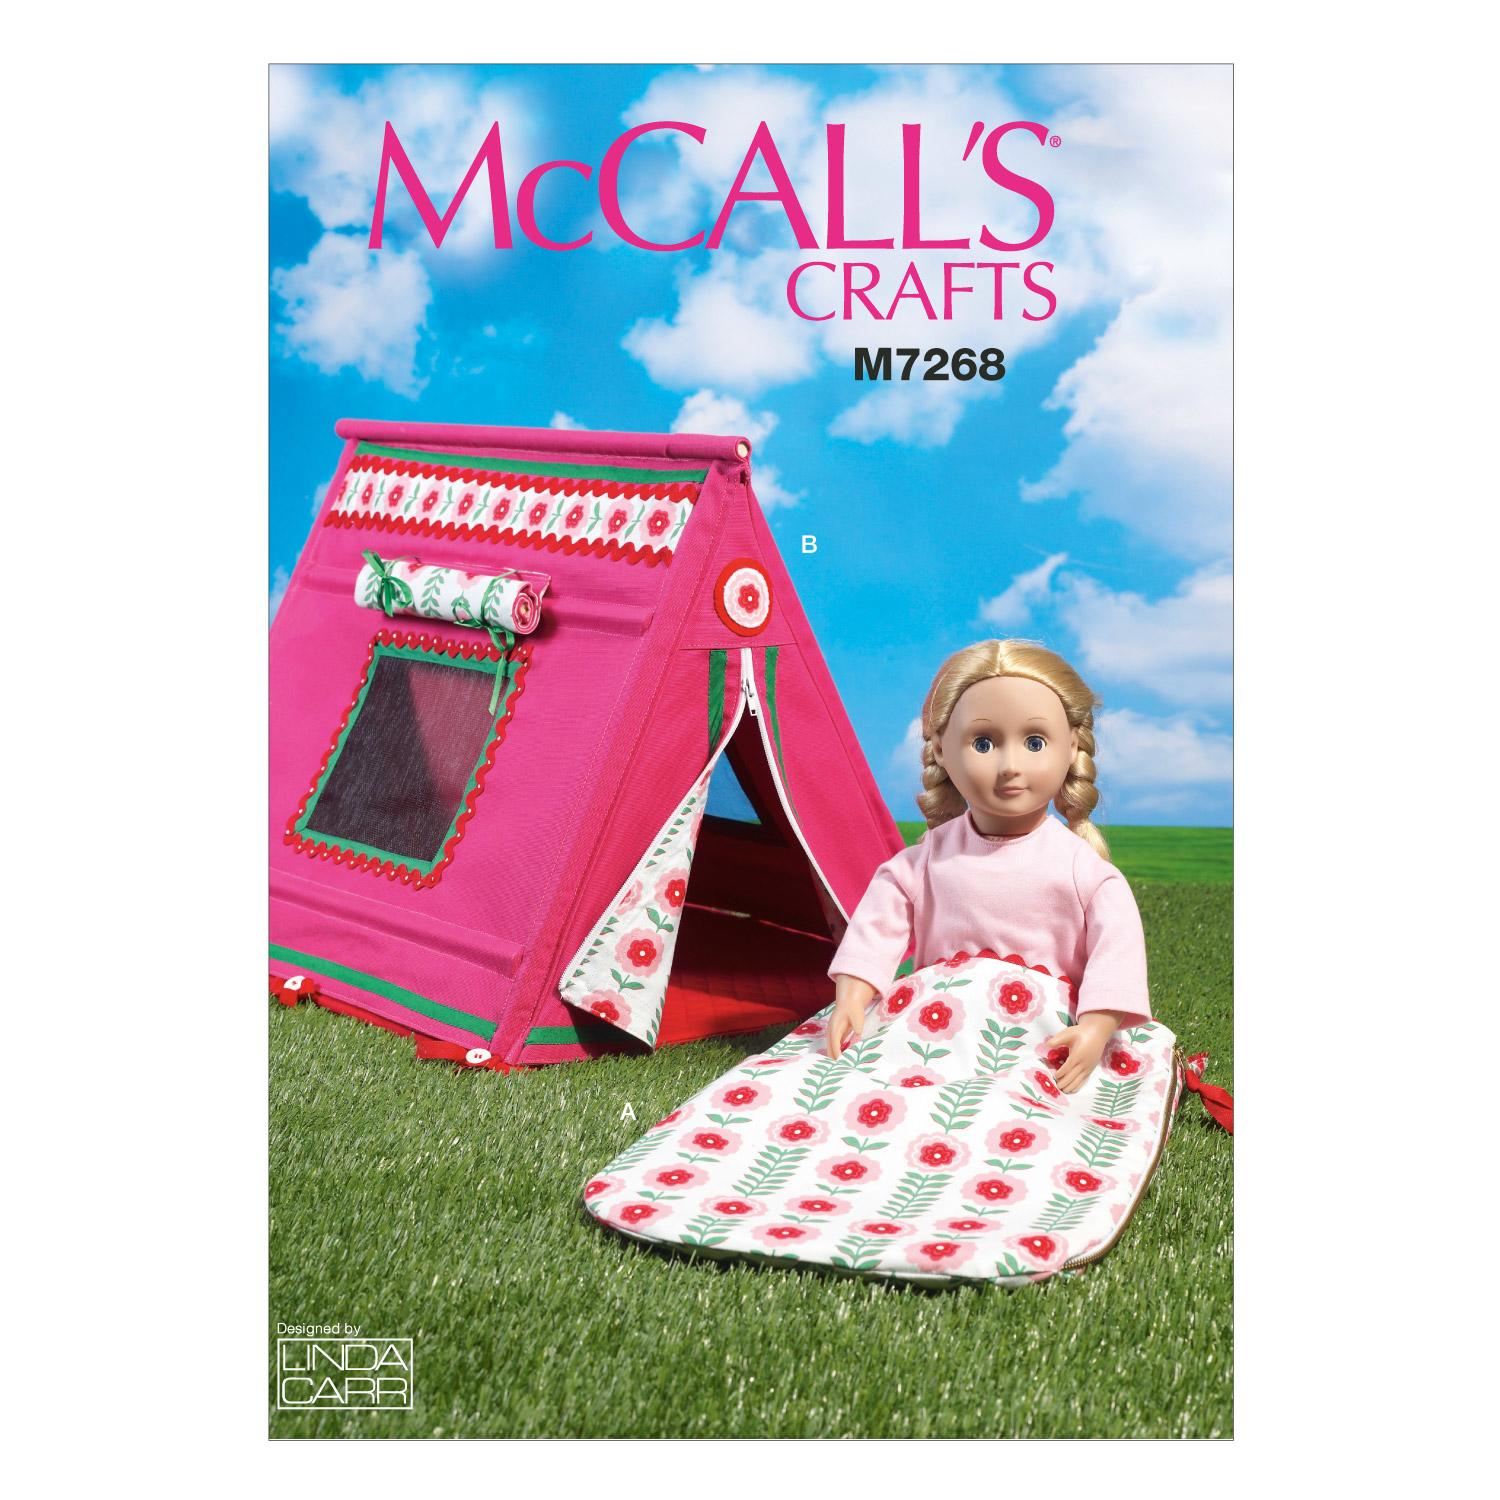 McCalls M7268 Crafts/Dolls/Pets